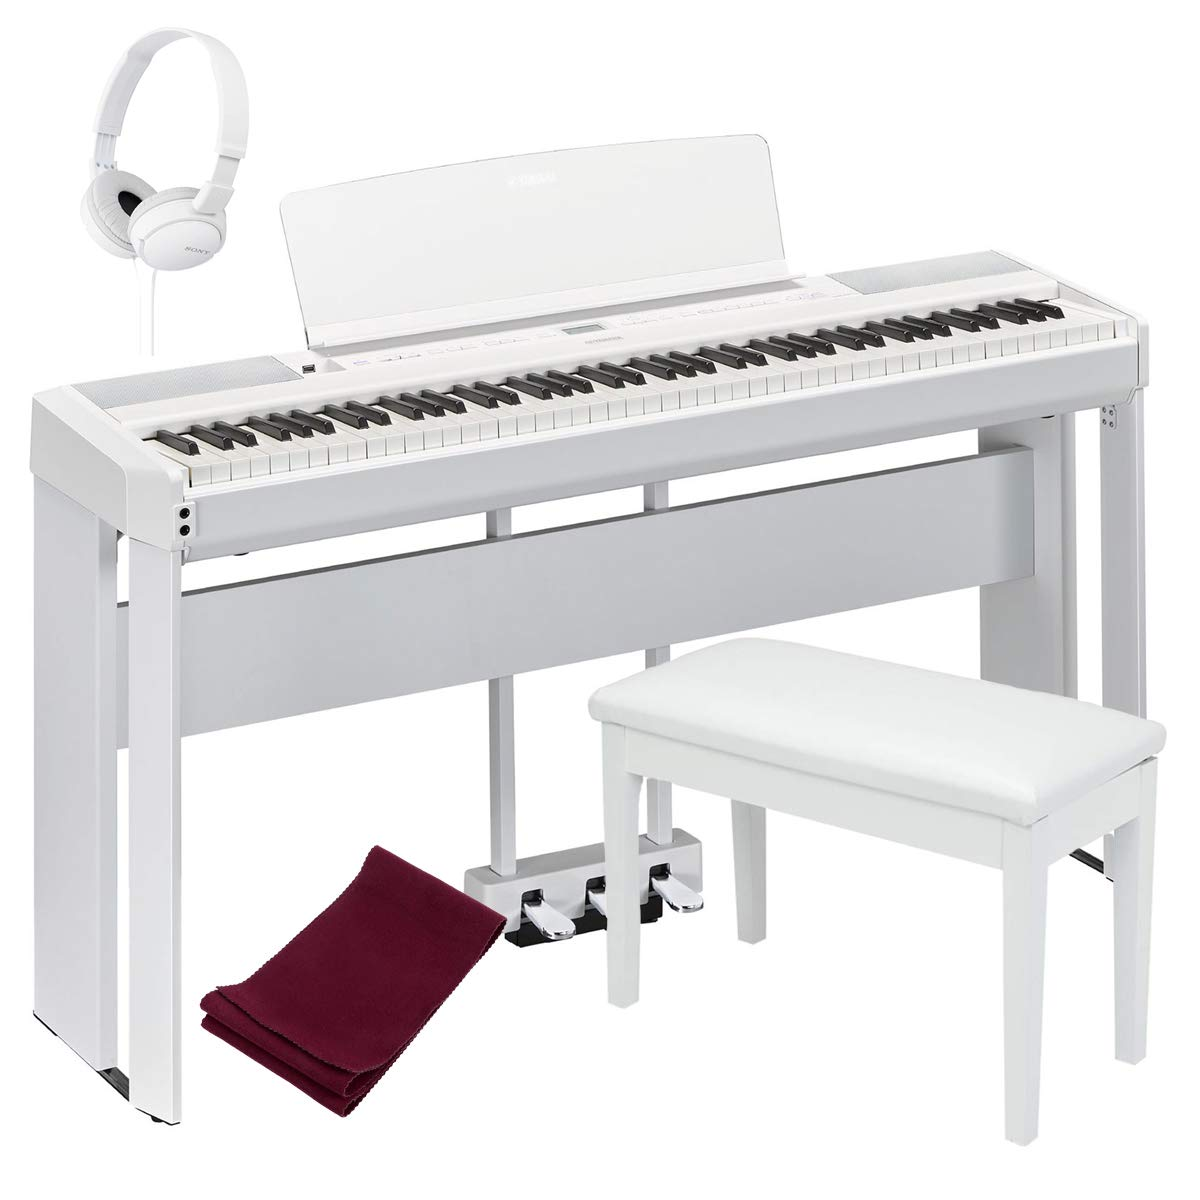 Yamaha P515WH 88-Key Digital Piano White bundled with the Yamaha L515WH Piano Stand, the Yamaha LP1WH 3-Pedal Unit, Padded Piano Bench, Dust Cover and Stereo Headphones by Yamaha Keyboards